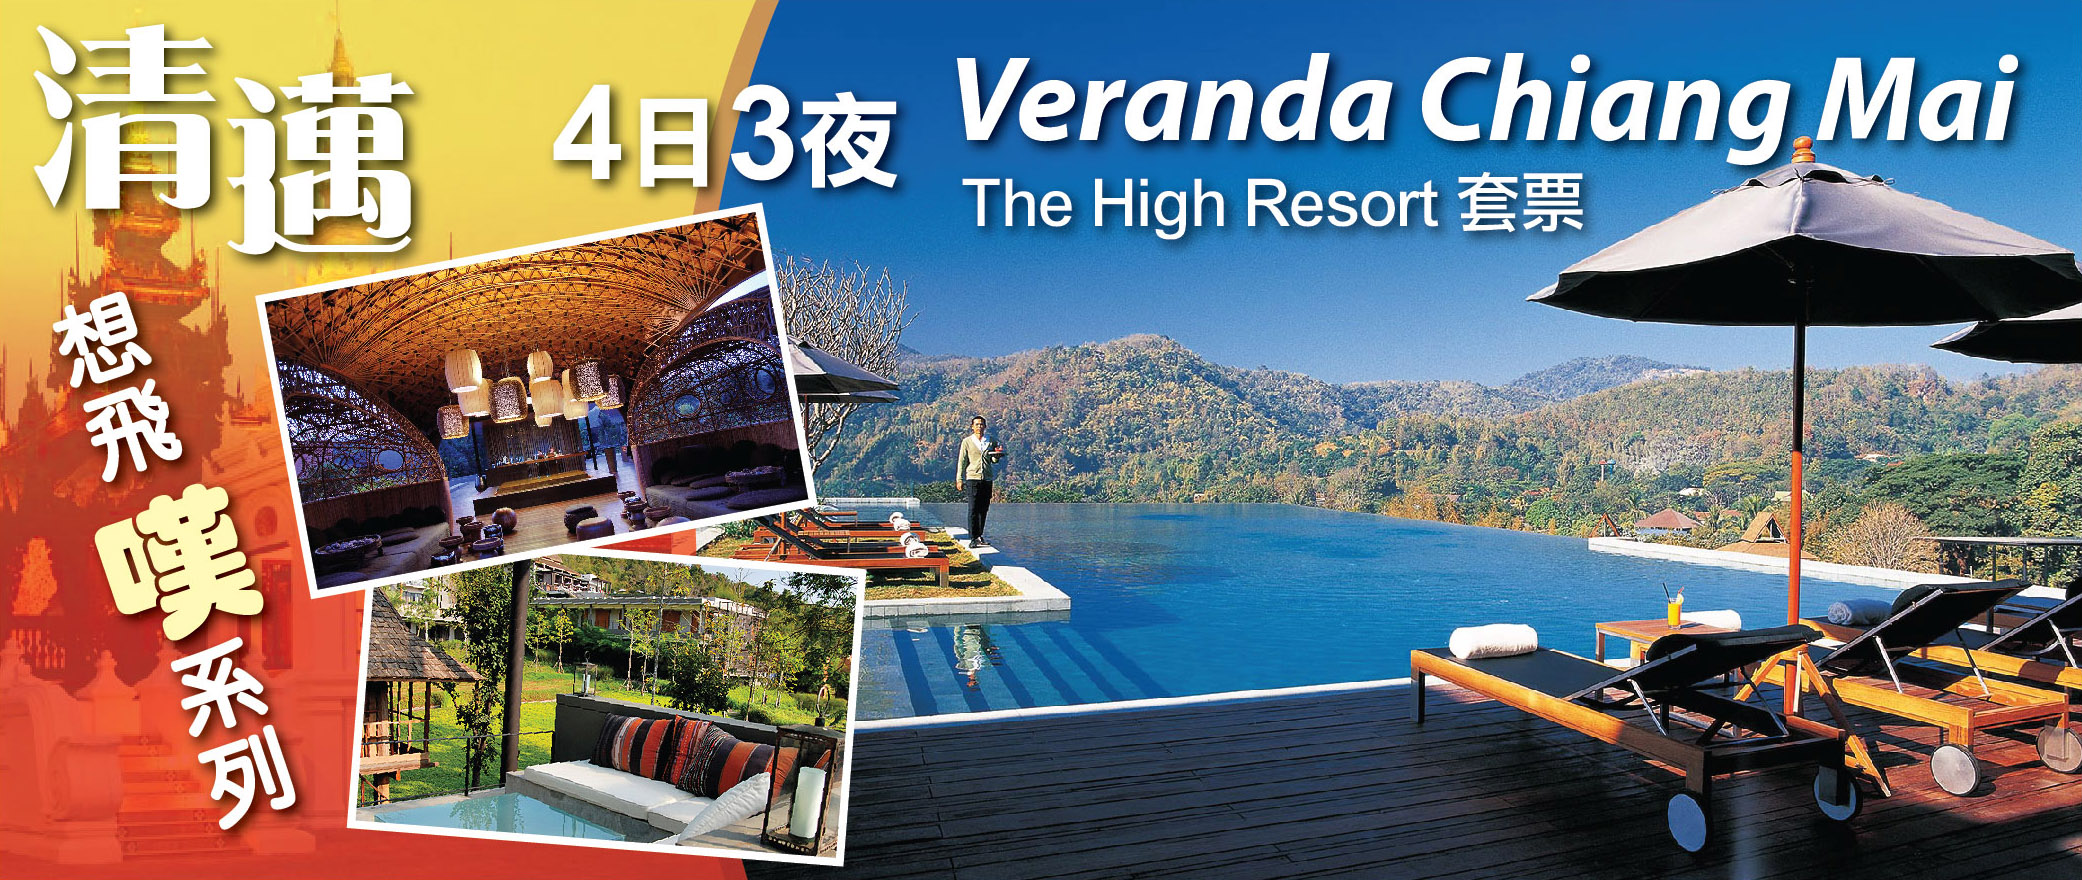 想飛嘆系列: 清邁 Veranda Chiang Mai - The High Resort 4日3晚 $2,988 up